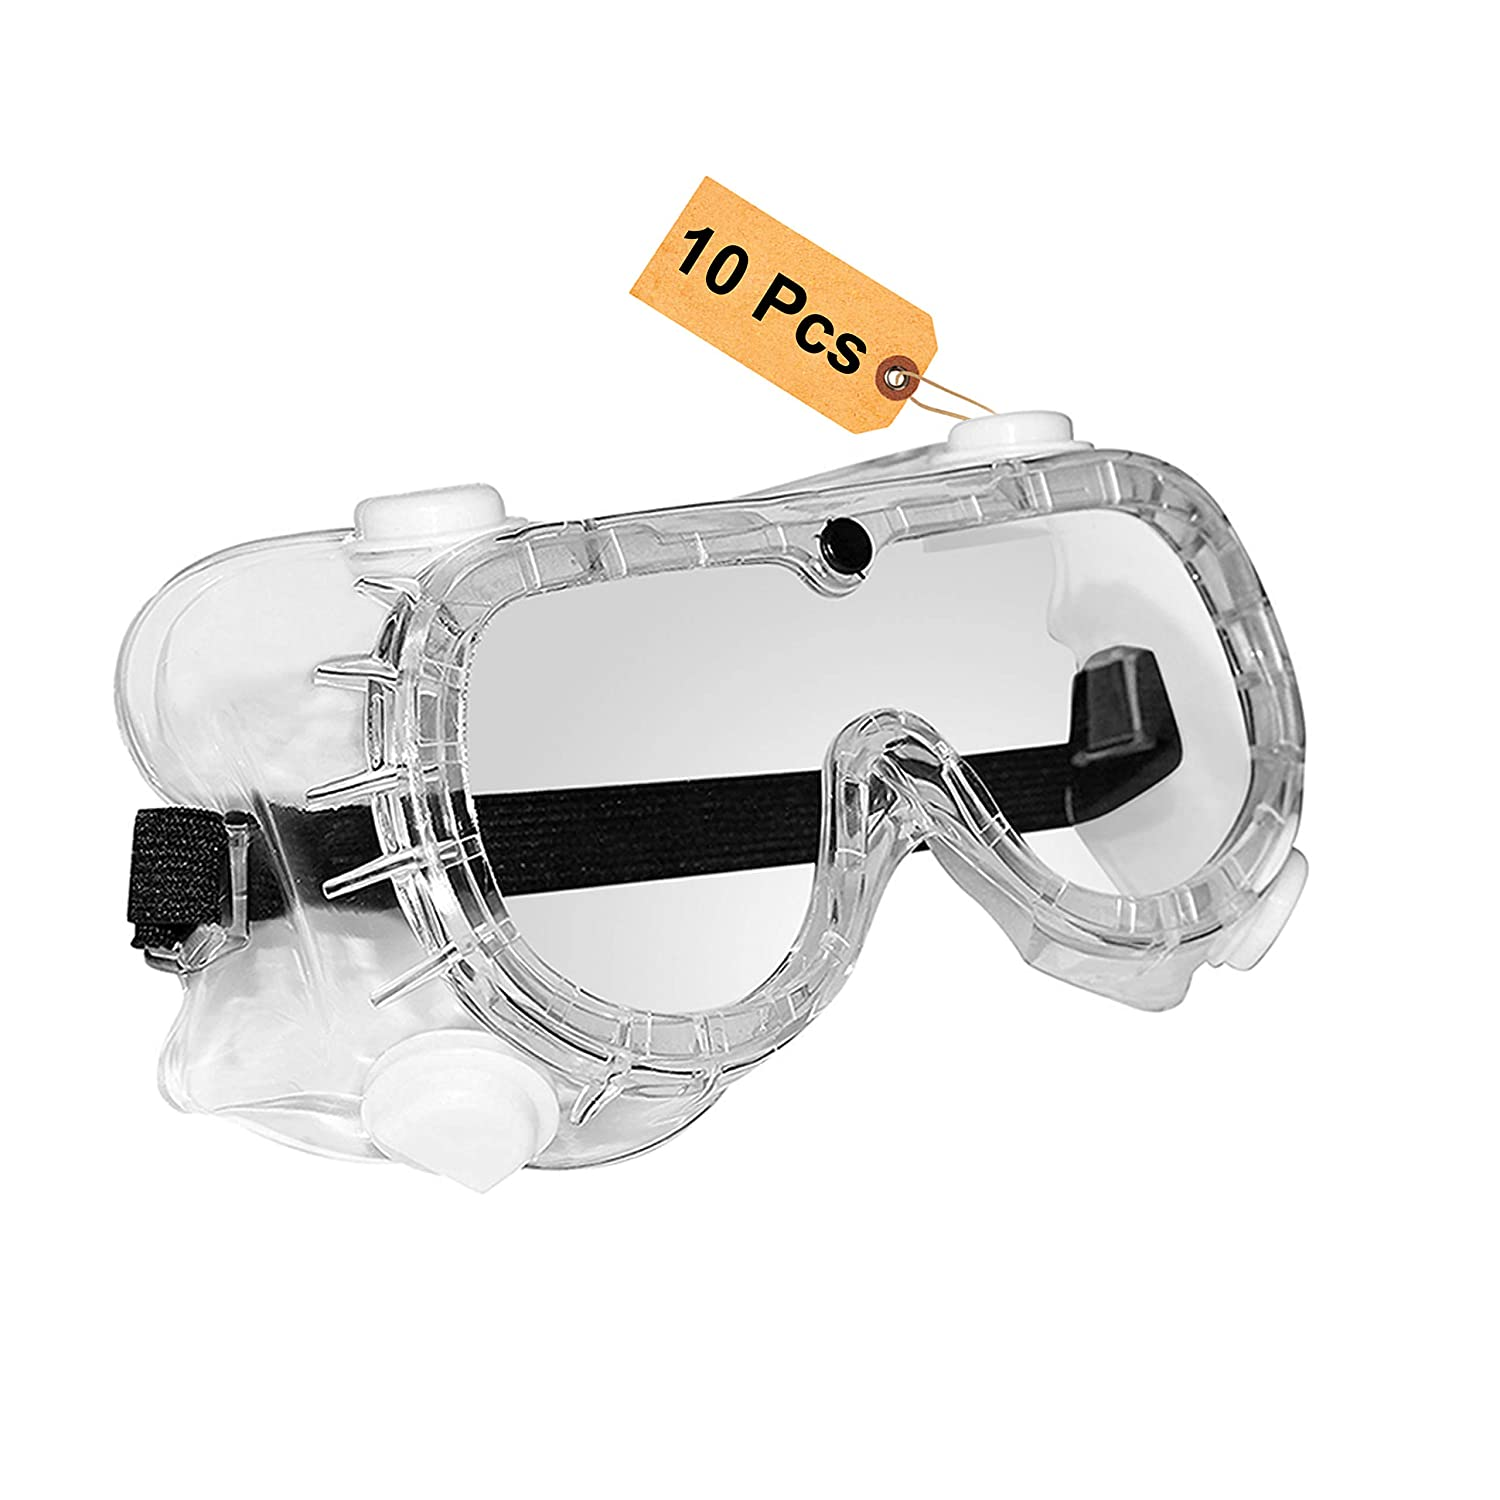 Safety Work Goggles Eye Protection Lab Builder Glasses Anti-Scratch//Dust Eyewear